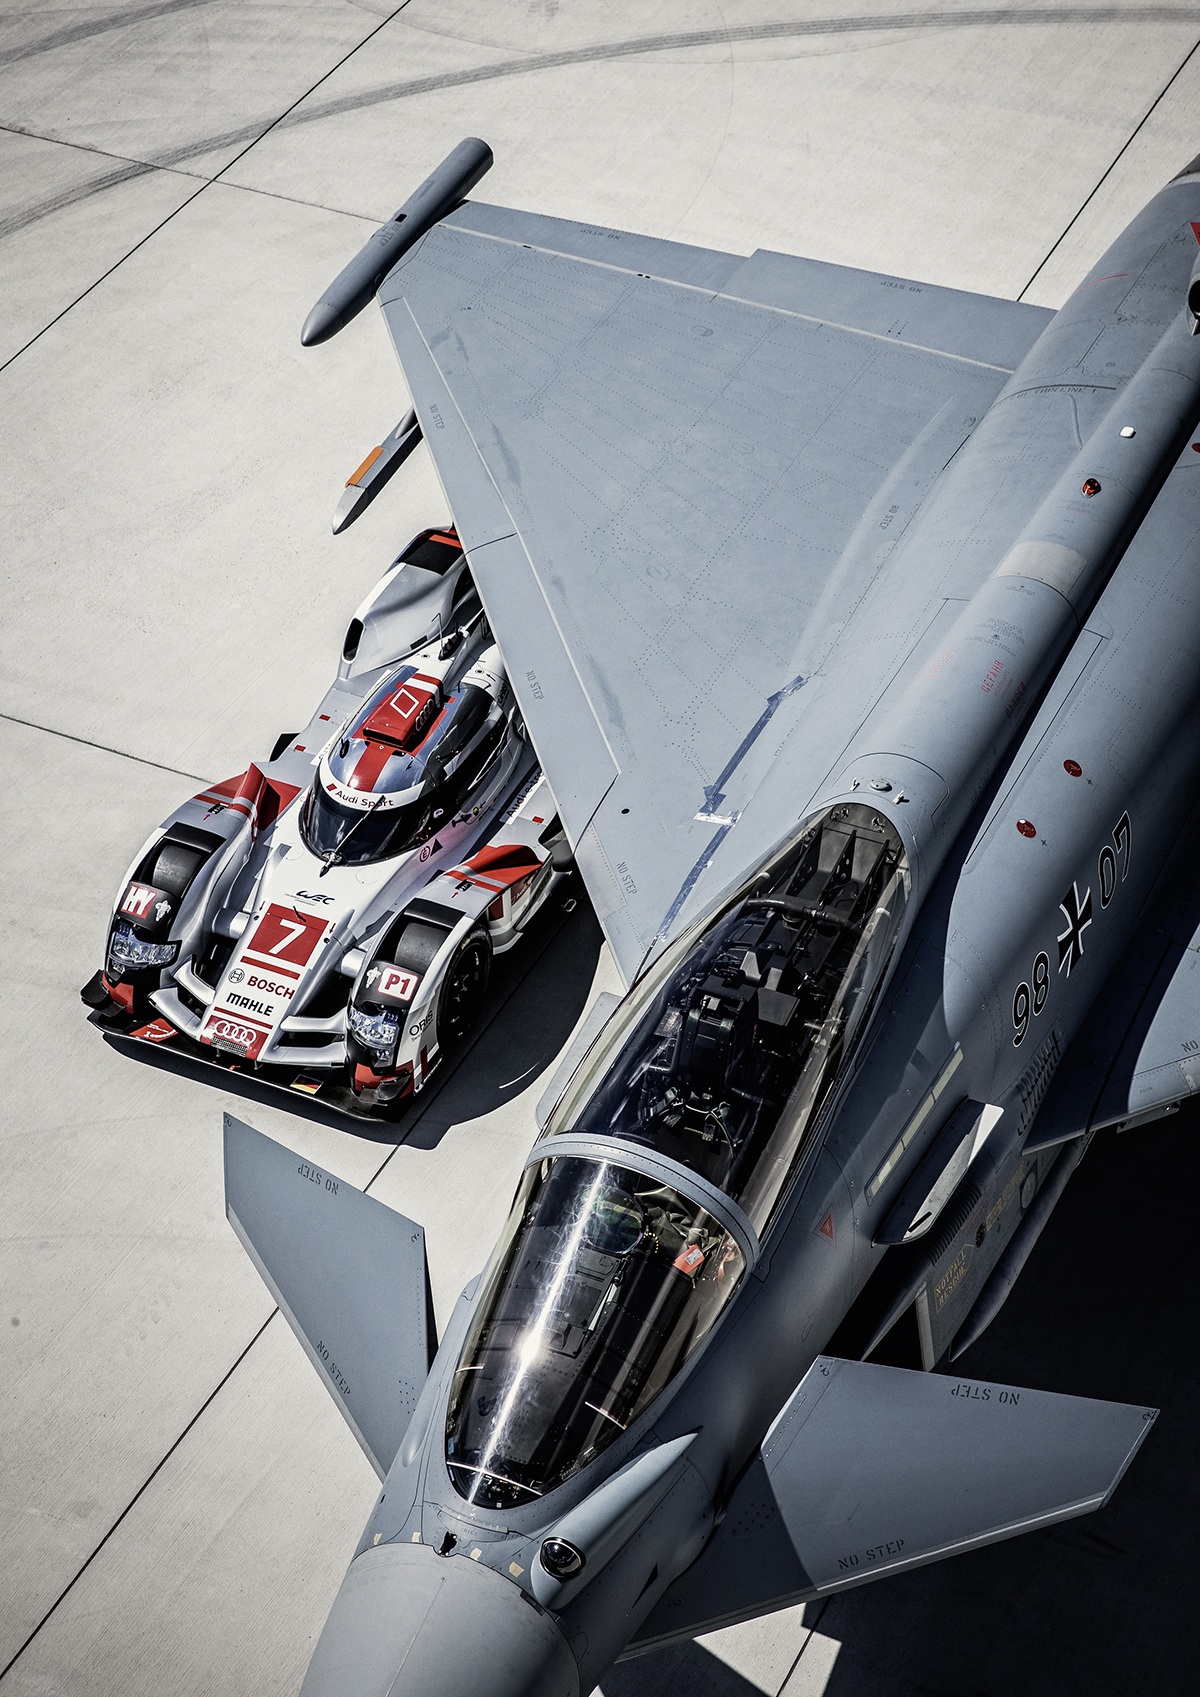 PASSION - FLIGHT CLUB Audi R18 e-tron quattro vs. Eurofighter Typhoon